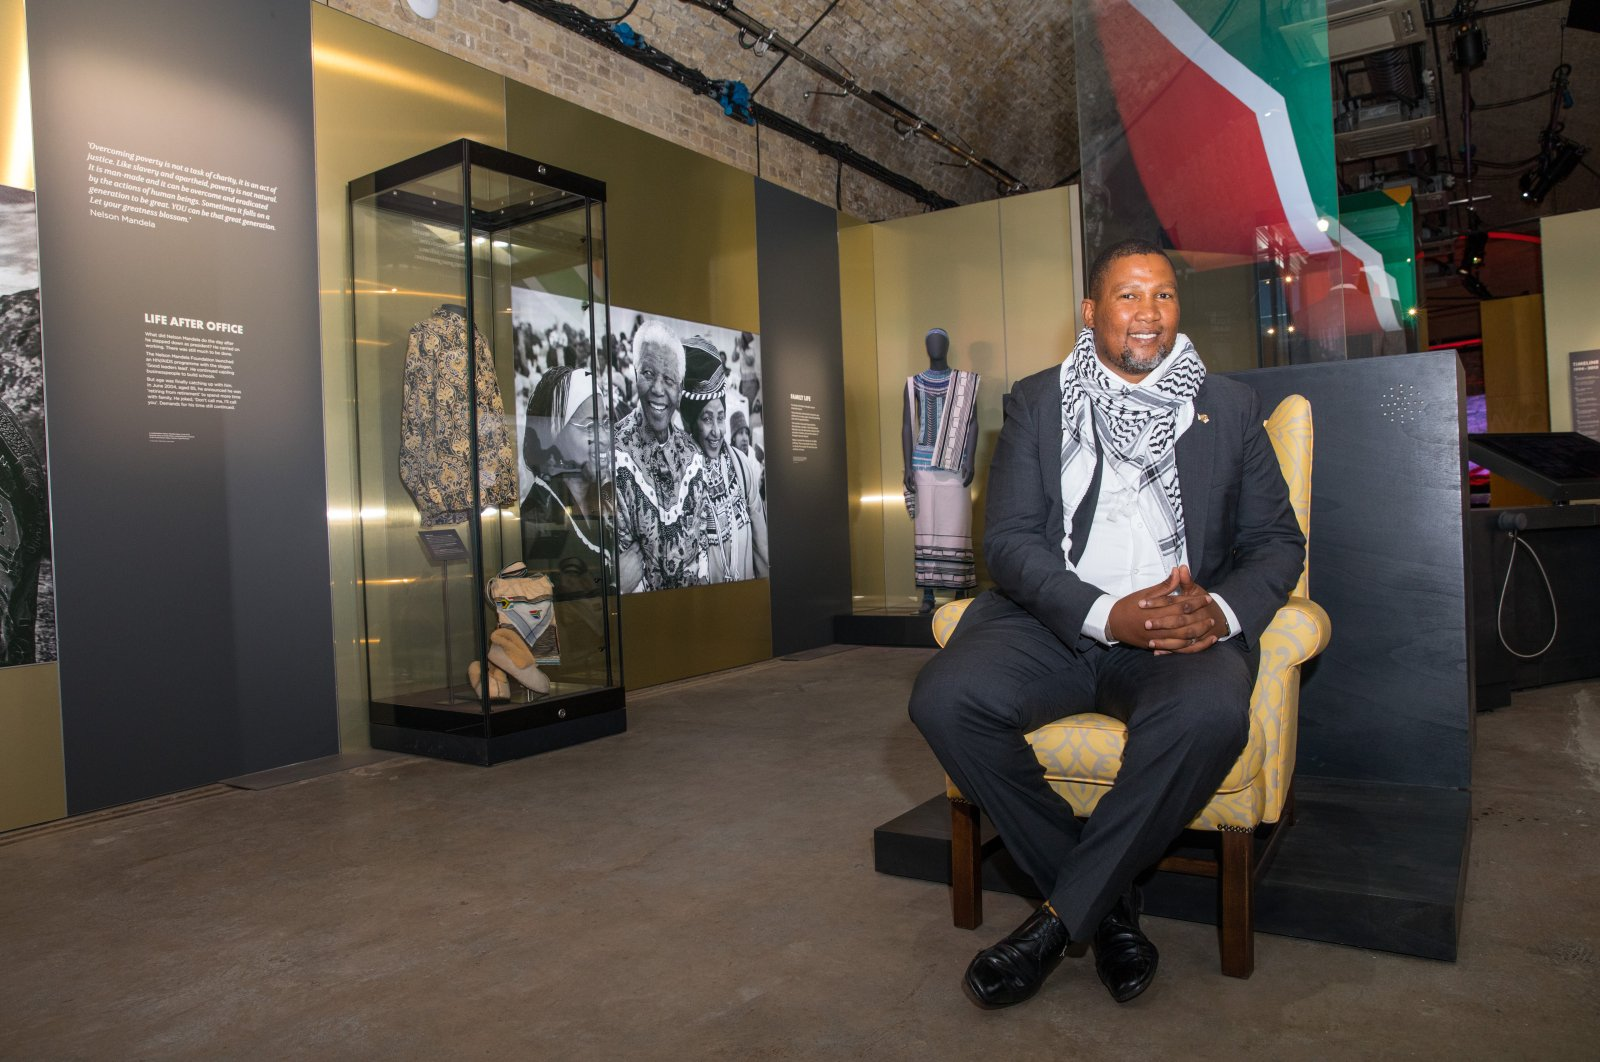 """This file photo shows Chief Zwelivelile """"Mandla"""" Mandela at the """"Mandela: The Official Exhibition"""" in London, U.K., Feb. 07, 2019 (Reuters Photo)"""